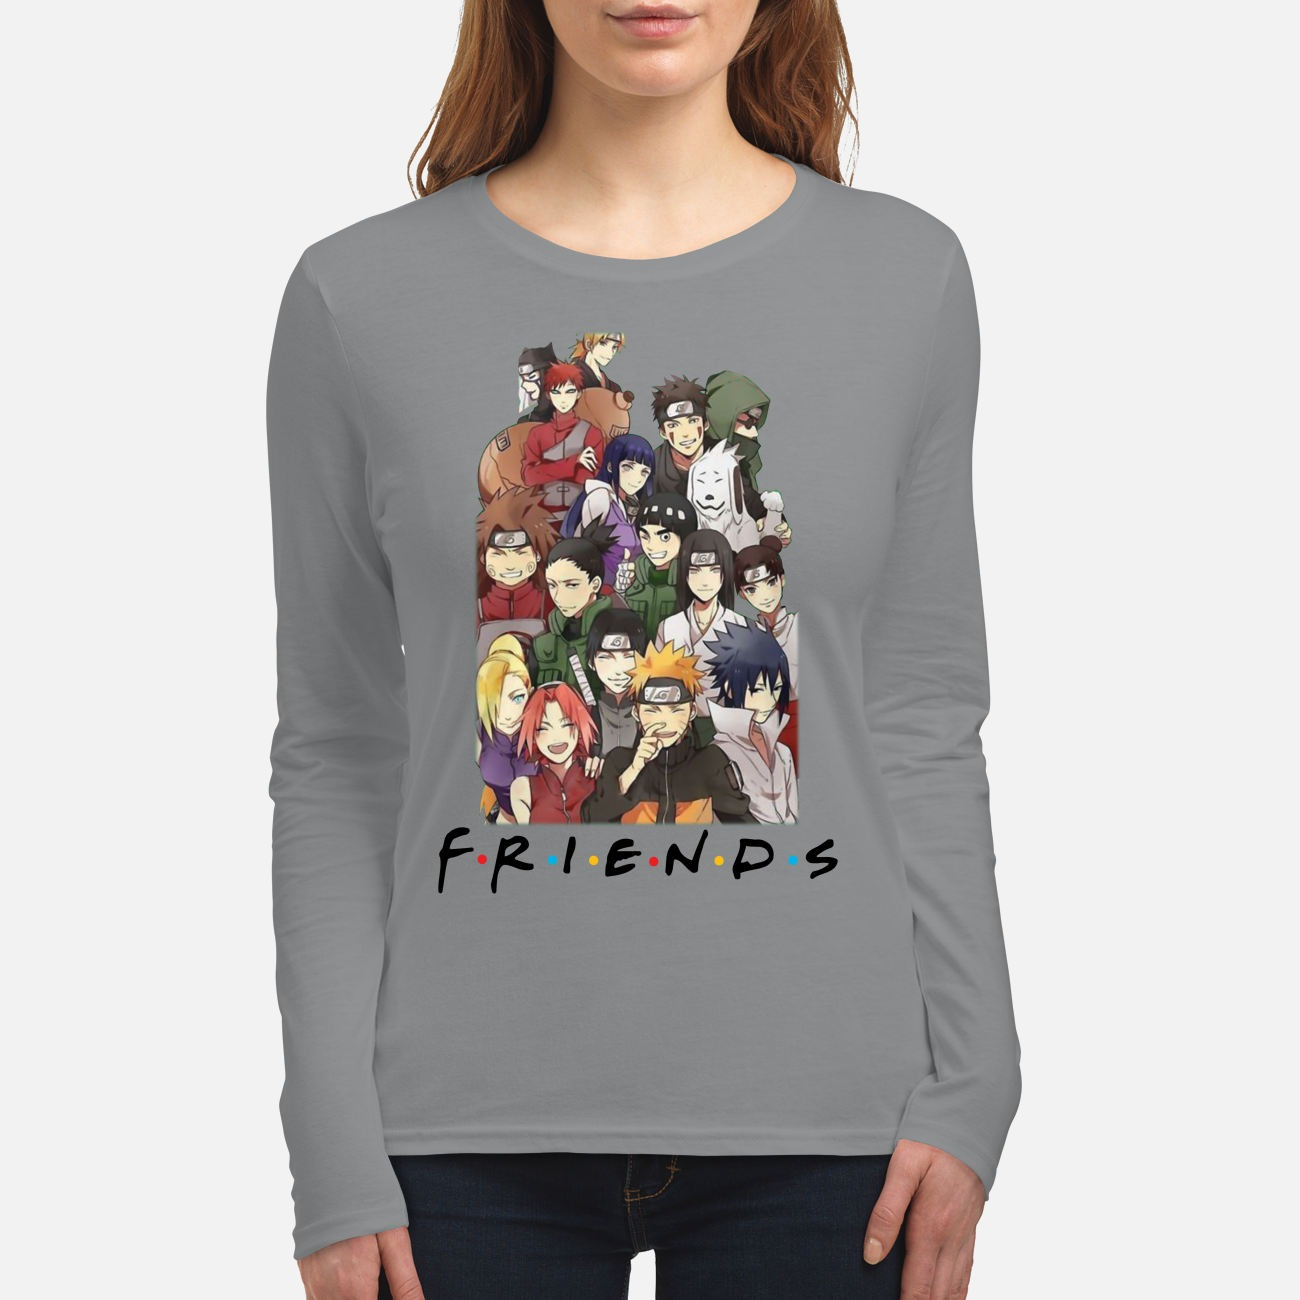 Naruto movie friends women's long sleeved shirt